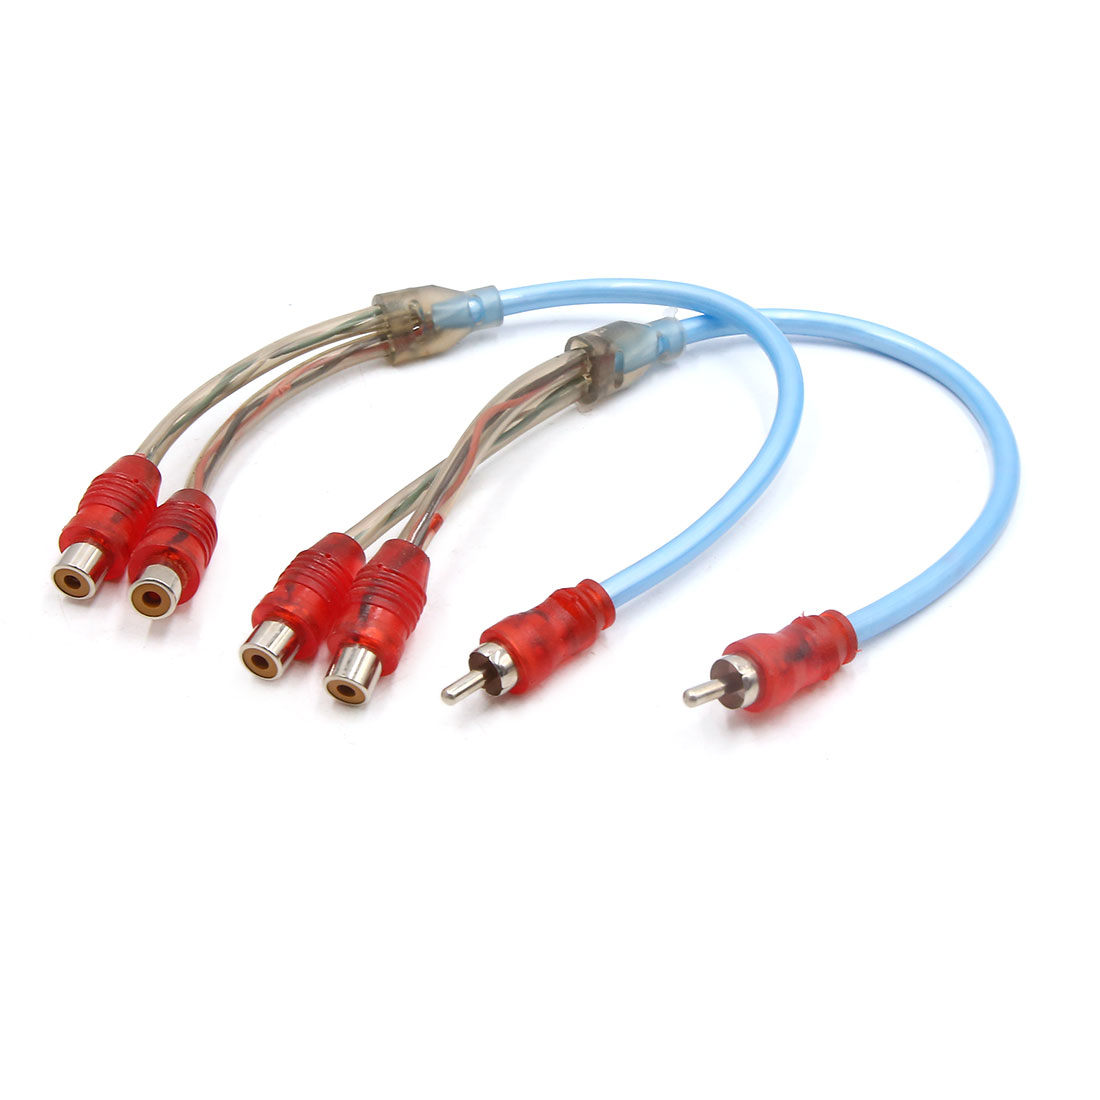 2pcs 32cm Length Male to 2 Female Car Audio Cord Cable Adapter Splitter Blue